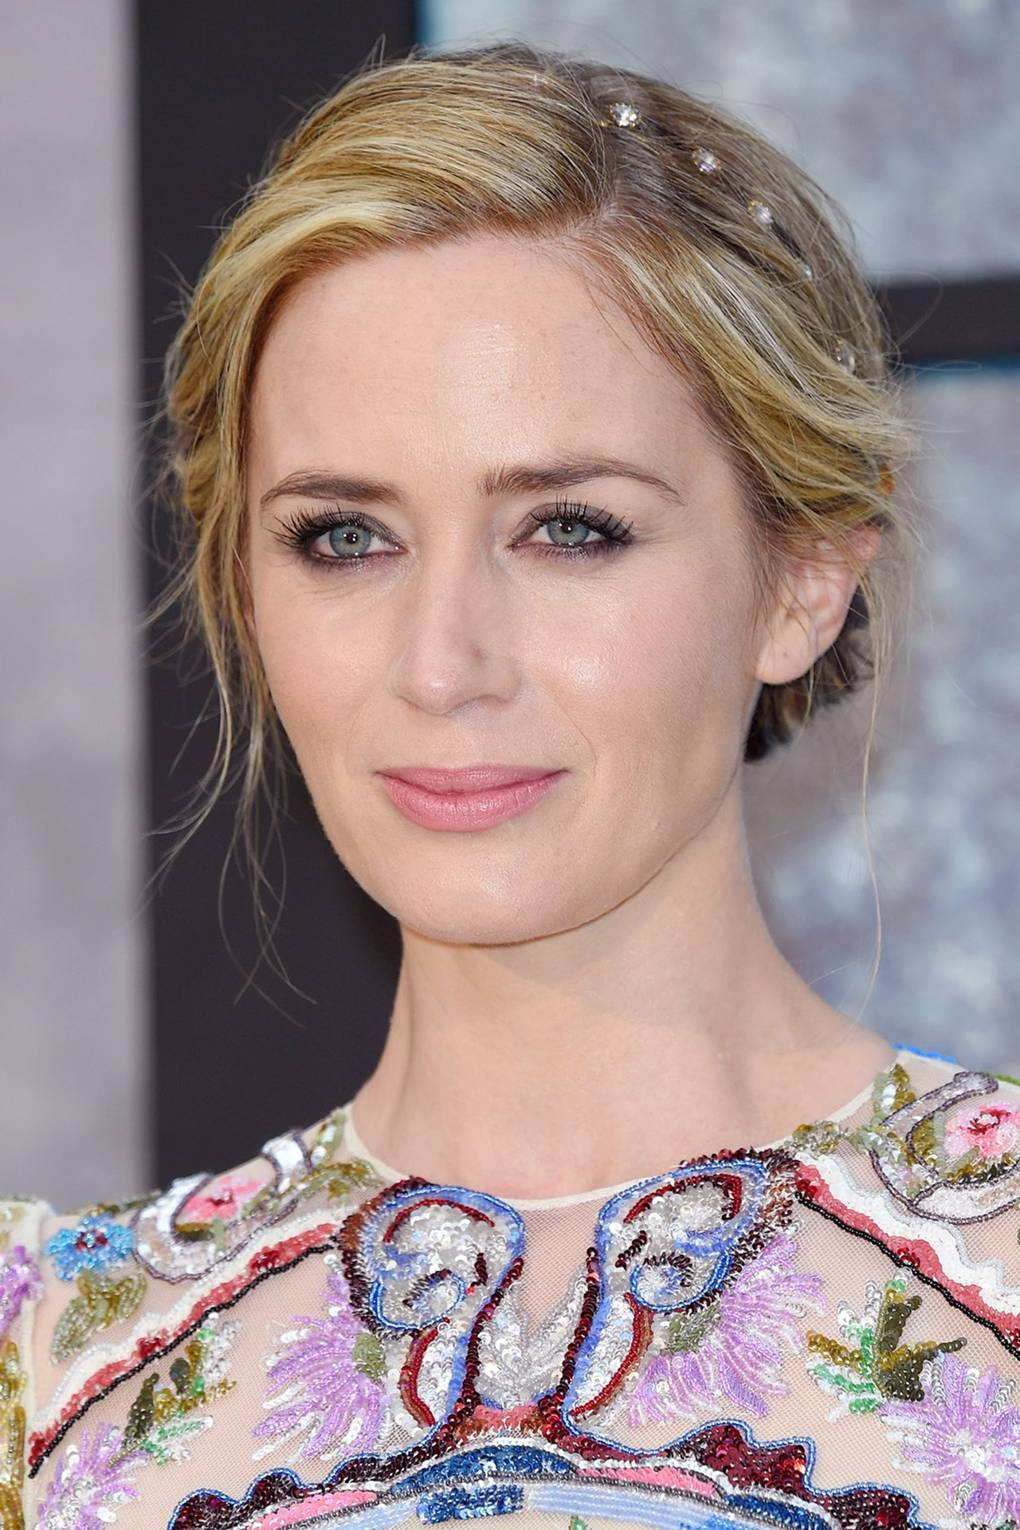 The Girl On The Train Film Cast: Everything you need to know ...